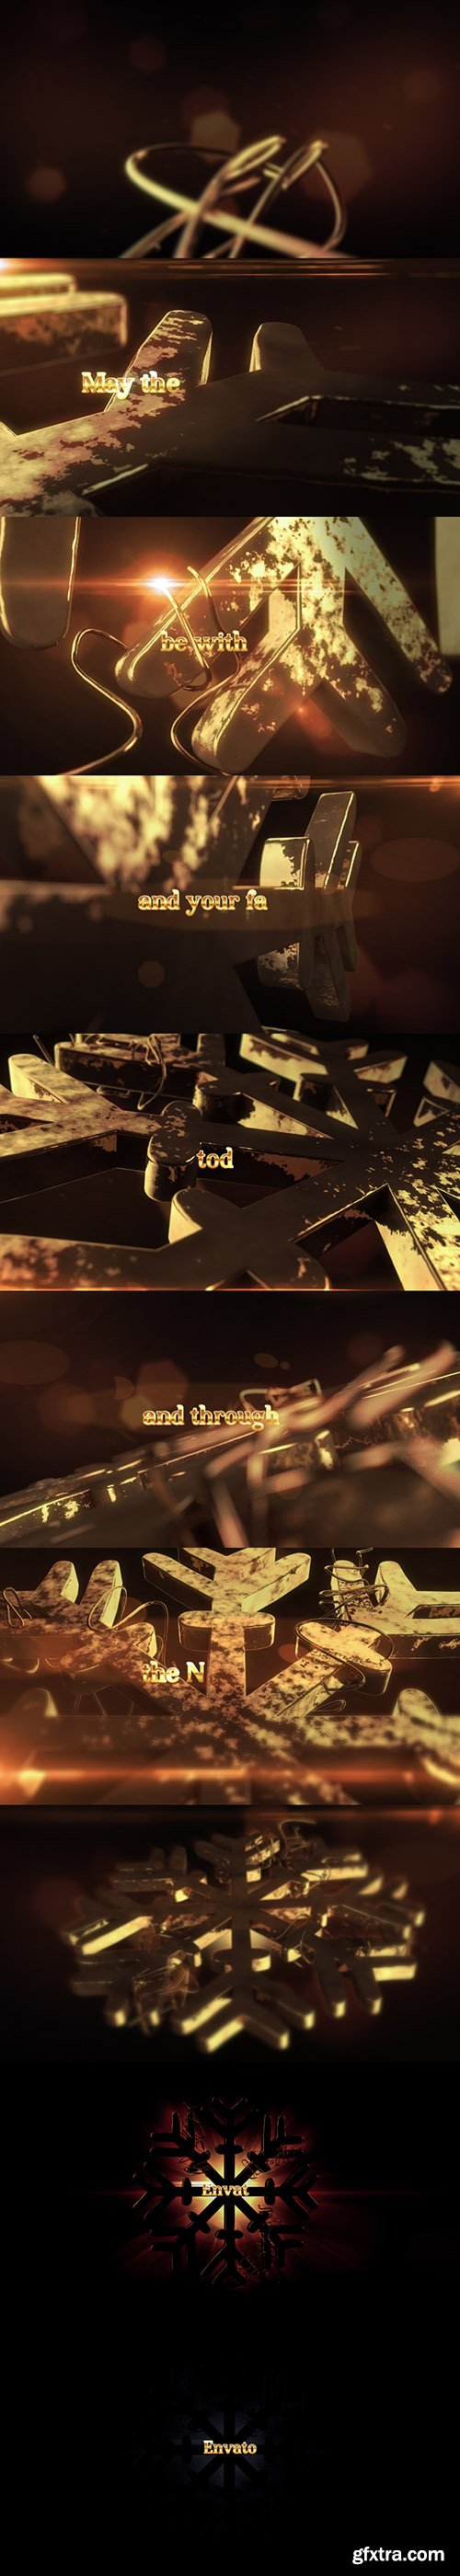 Videohive 3D Gold Christmas | Titles - Opener 19104526